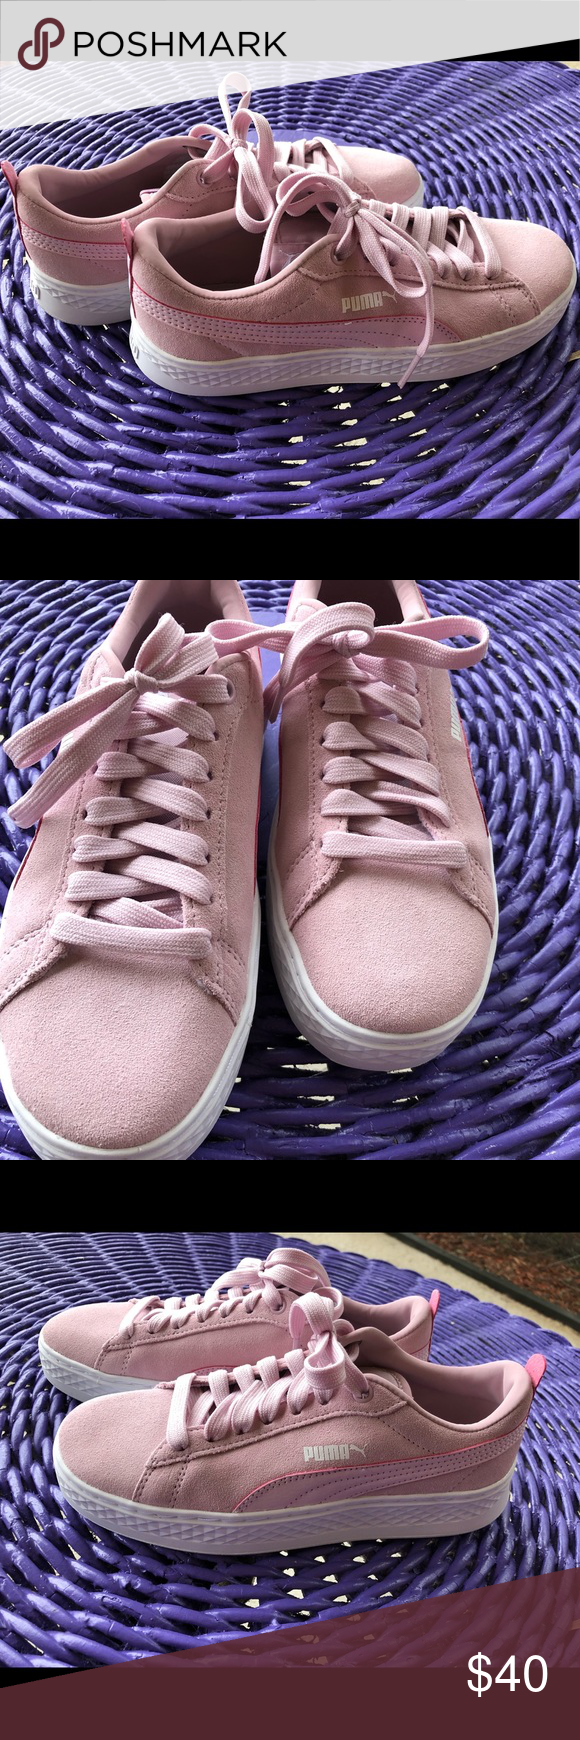 d18bb689170907 PUMA tennis shoes size 7 BRAND NEW ! Suede baby pink brand new PUMA tennis  shoes